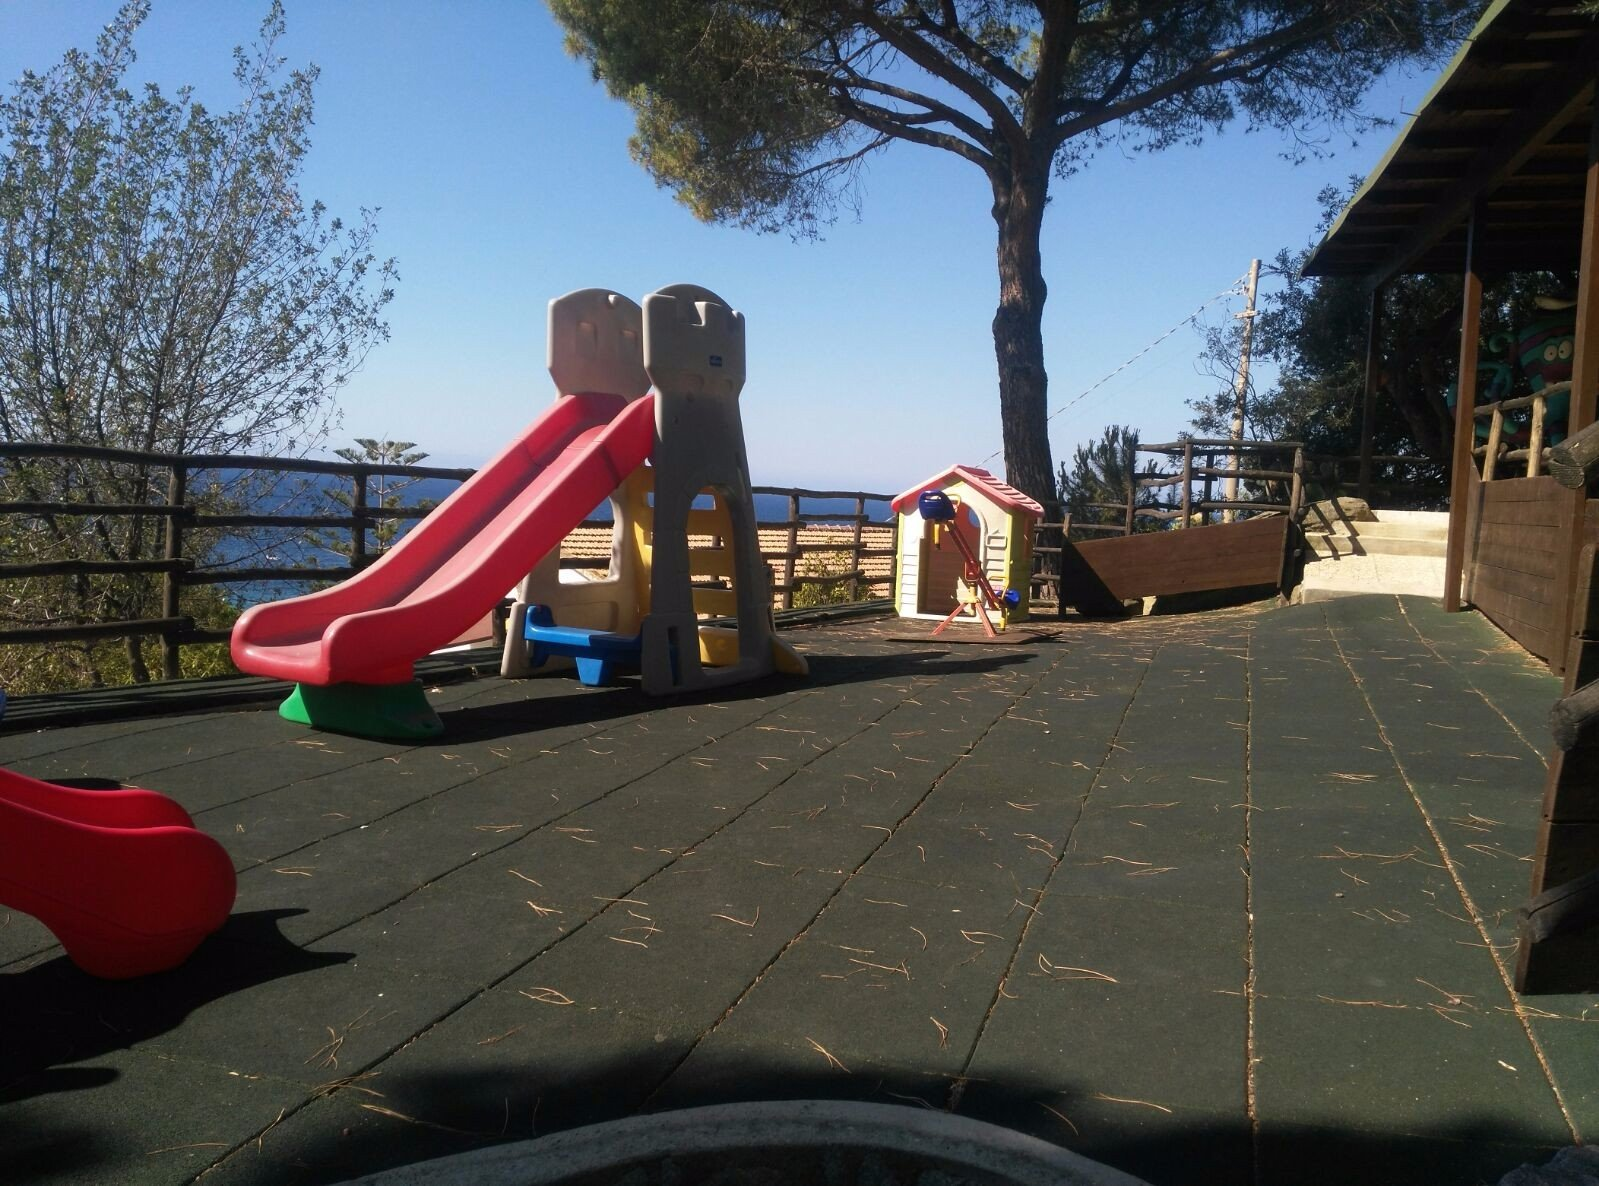 Hotel Baia Imperiale Playground